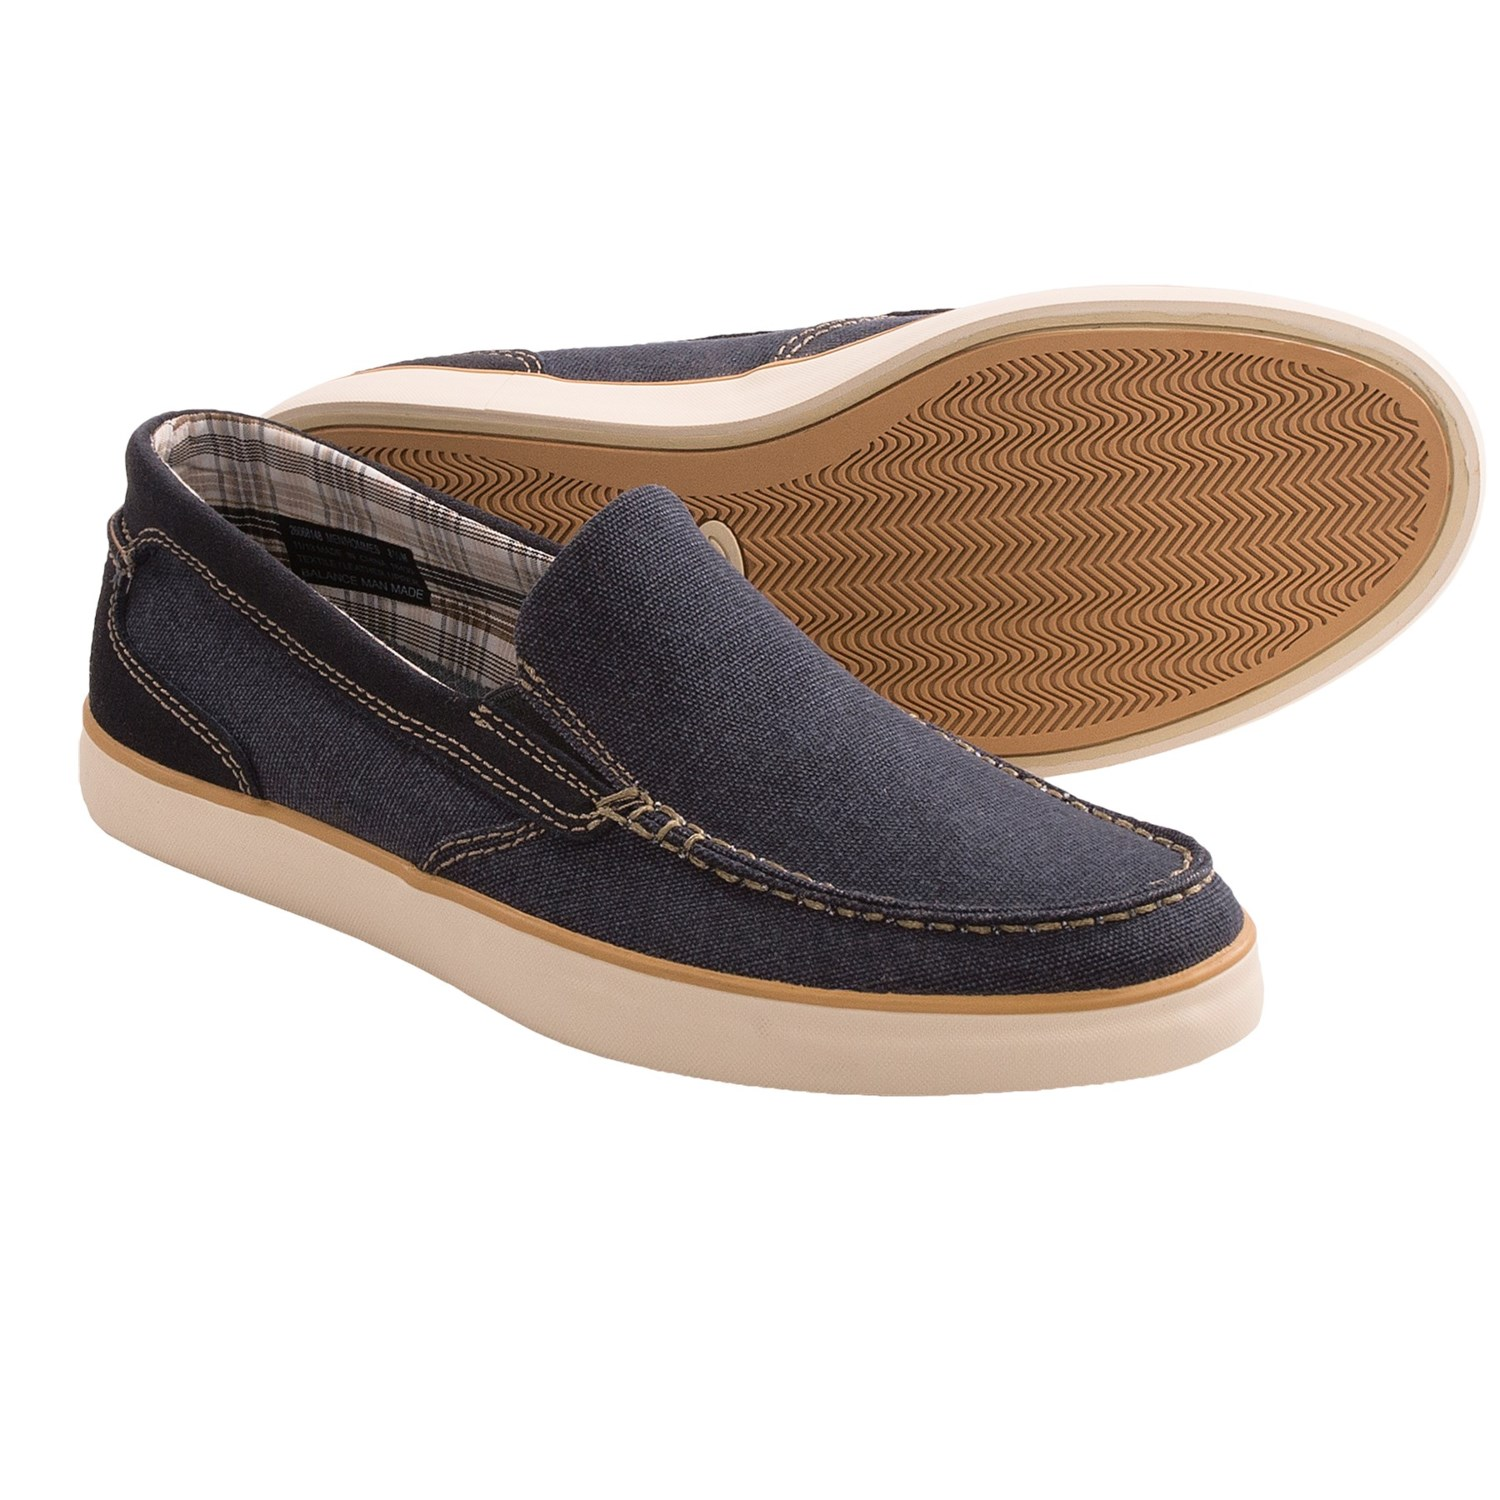 clarks boid knoll shoes slip ons for save 35